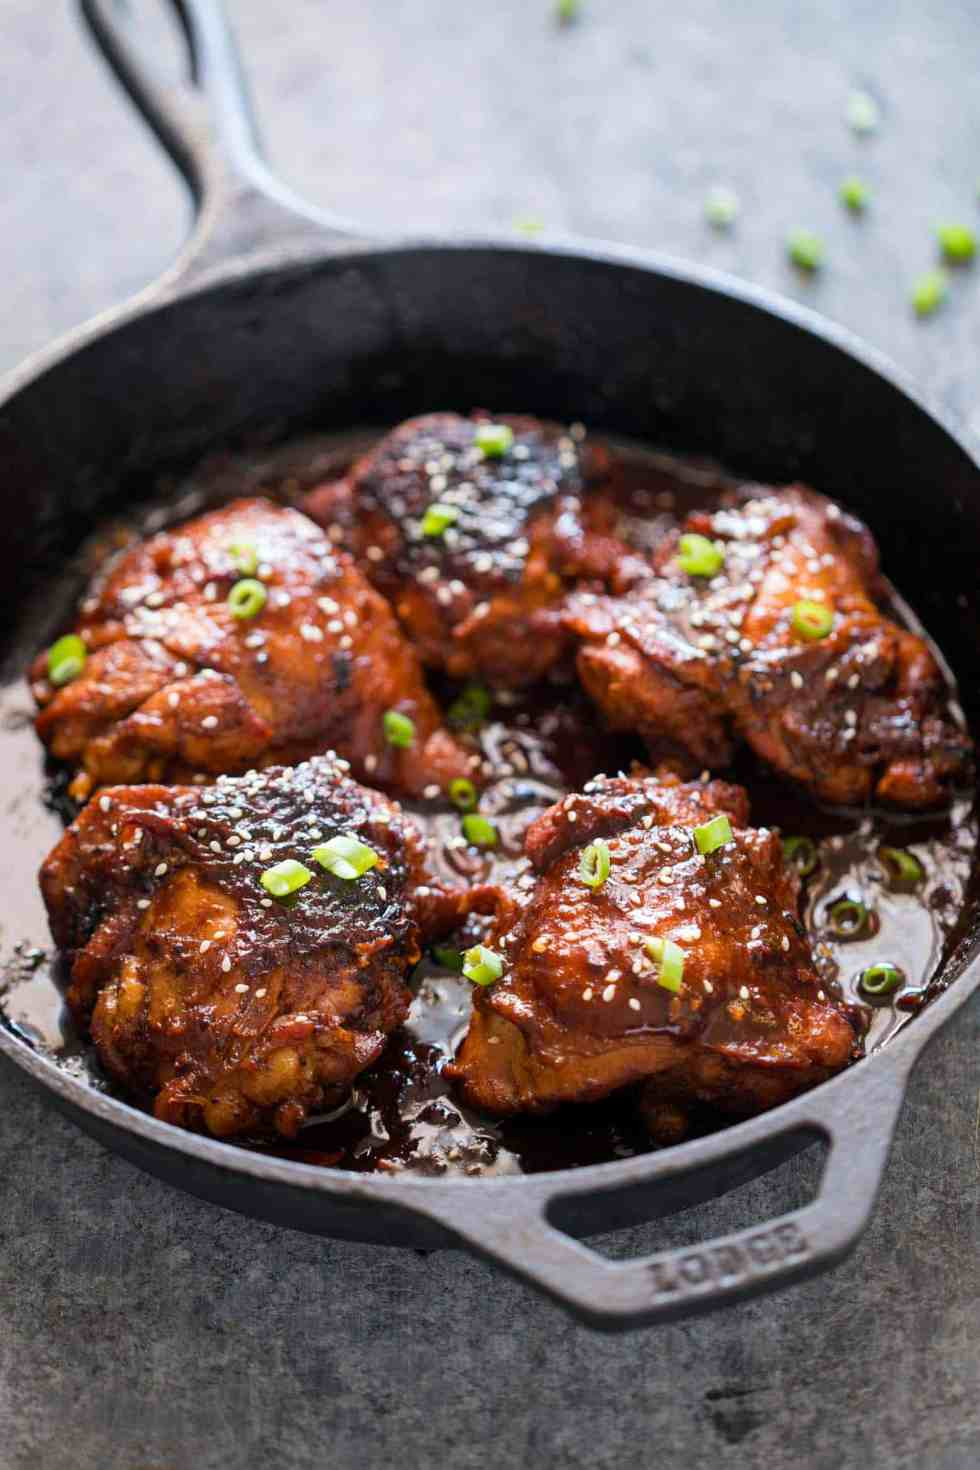 Spicy Korean Chicken Thighs in Gochujang Sauce - an intensely flavoured chicken recipe made in a cast iron pan for extra crispy, juicy thighs and a finger licking marinade!